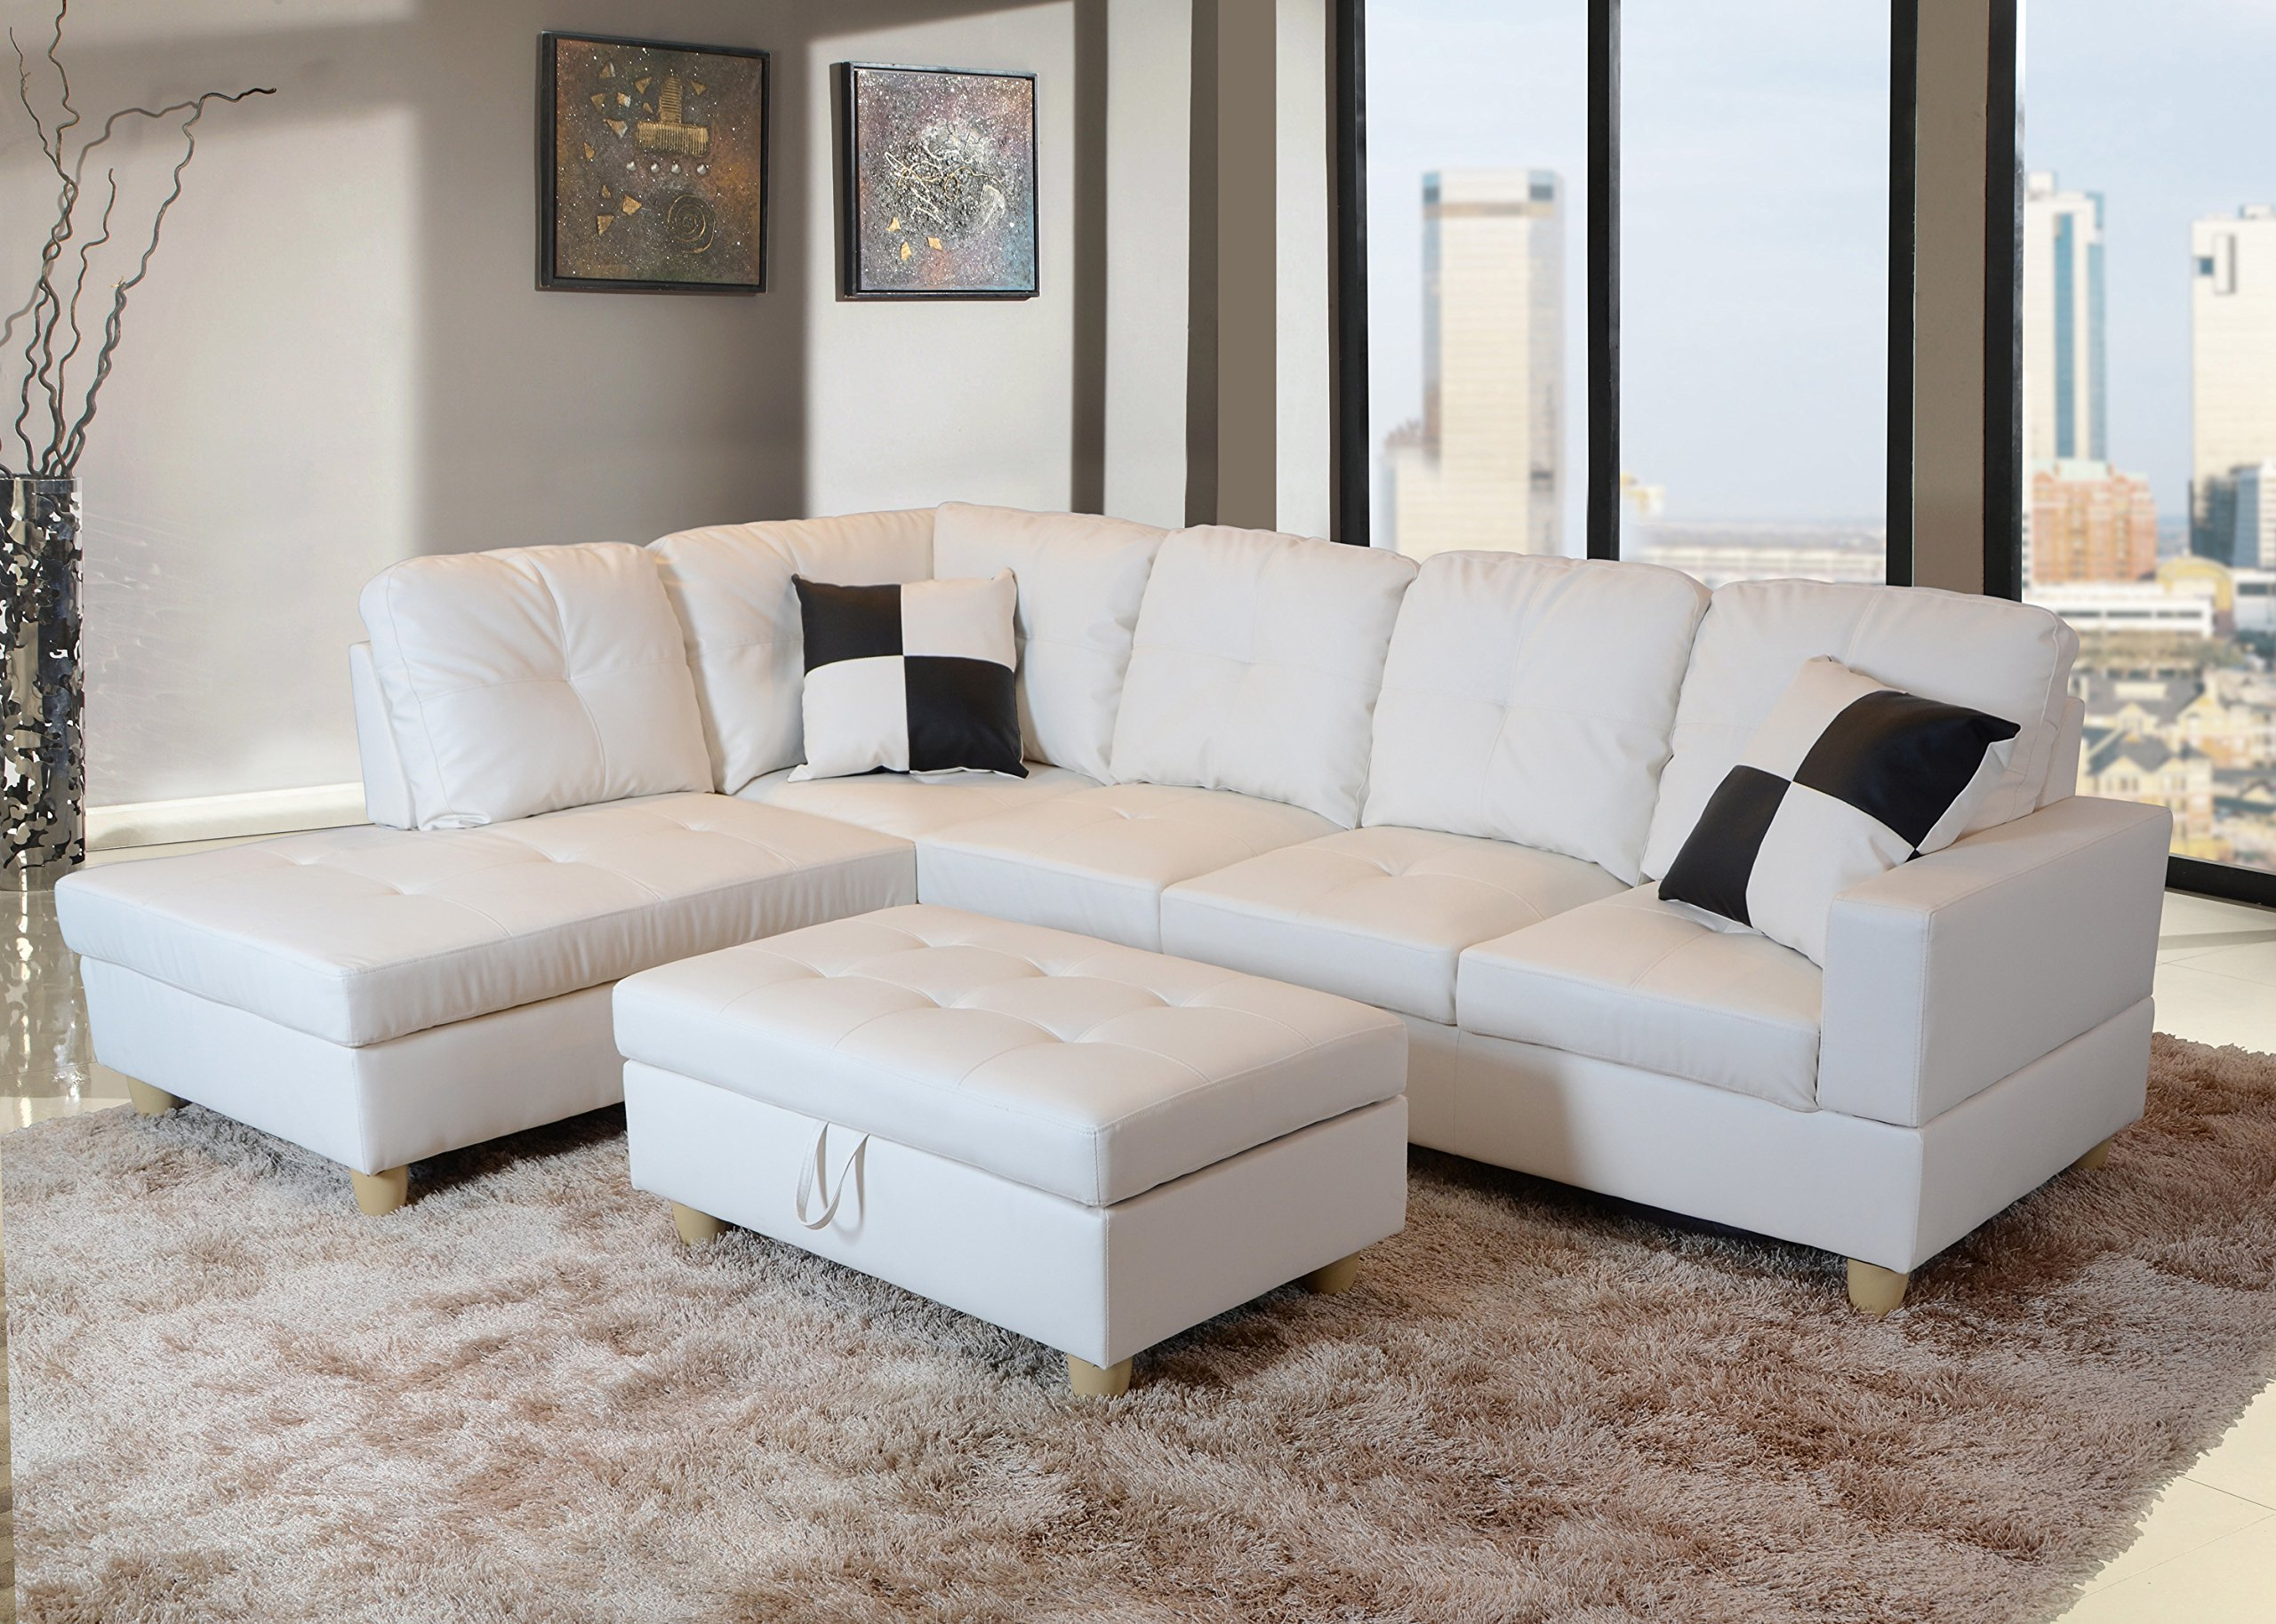 Lifestyle Furniture Left Facing 3PC Sectional Sofa Set,Faux Leather,White(LS092A) by Lifestyle